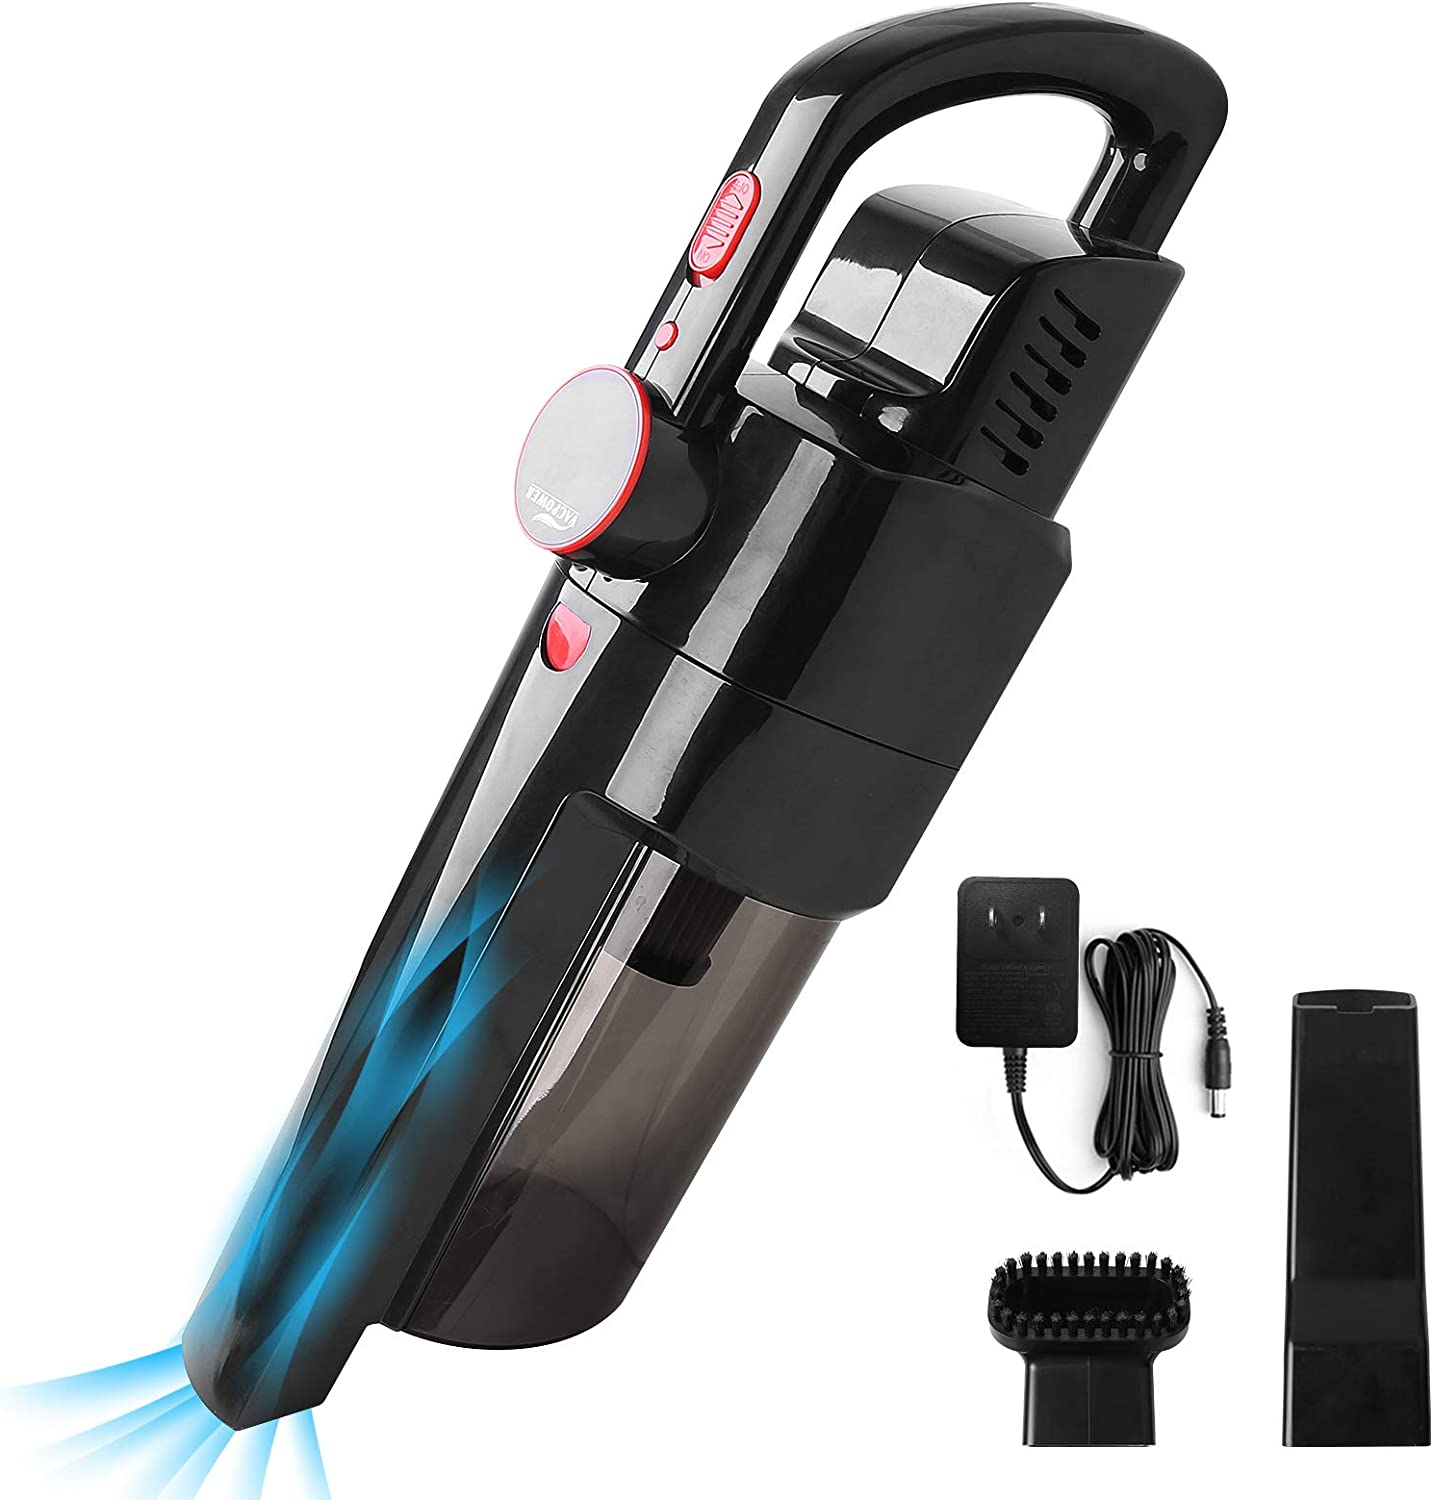 Handheld Vacuum, VACPOWER Cordless Handheld Vacuum Cleaner Powered by Li-ion Battery Rechargeable Quick Charge Tech, Mini Vacuum Cleaner for Home & Car